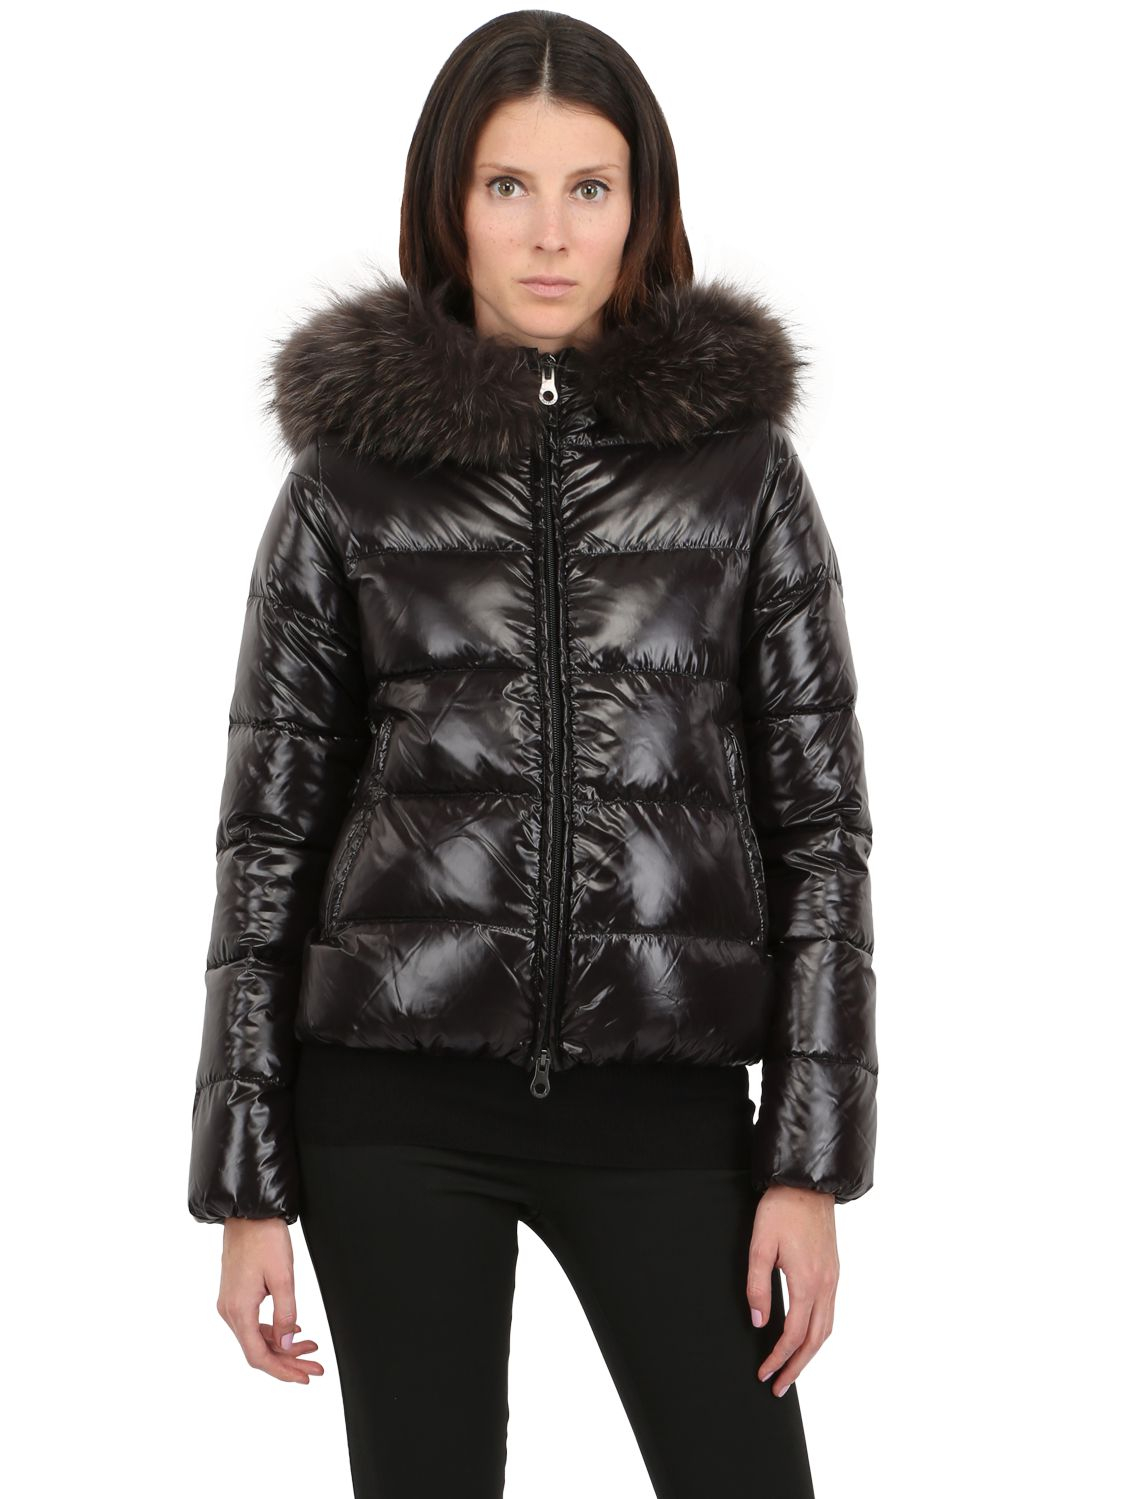 Duvetica Adhara Nylon Down Jacket With Fur In Black For